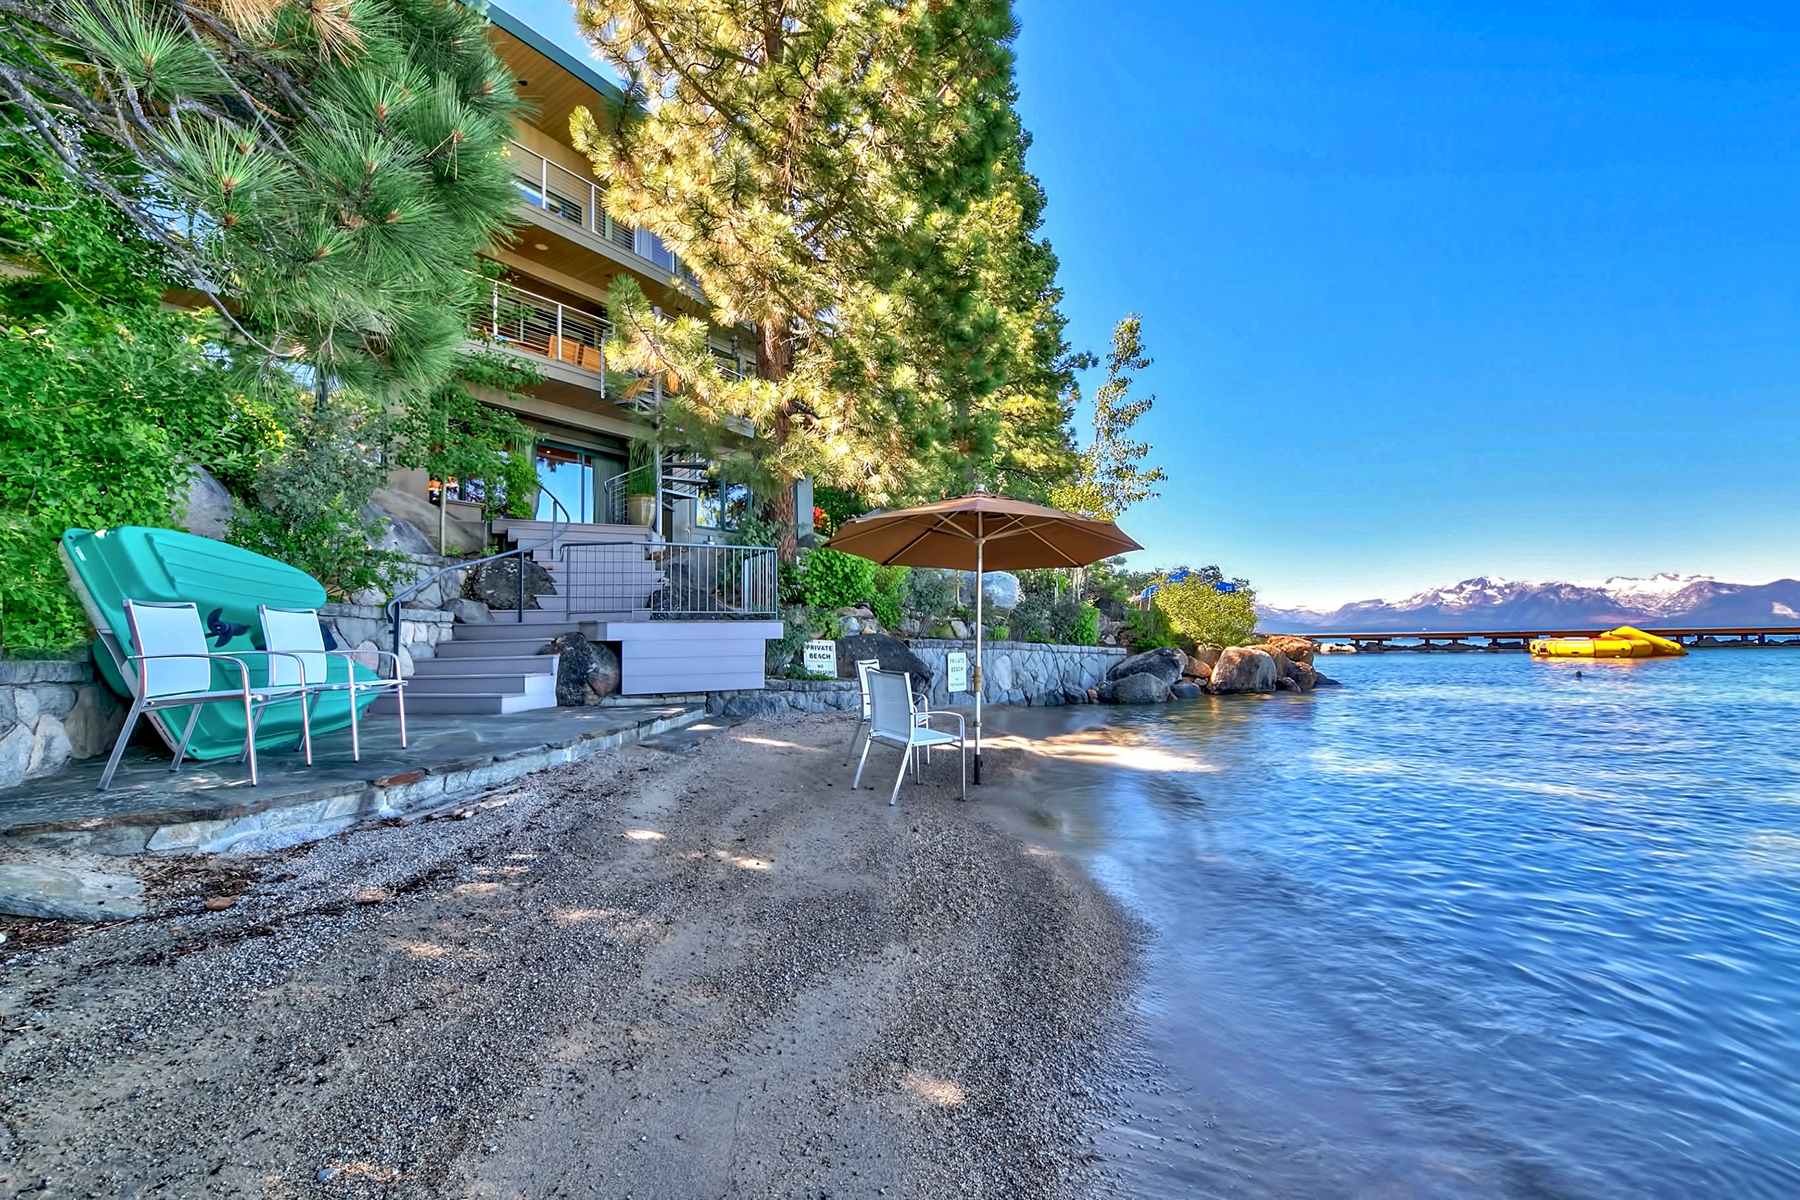 Additional photo for property listing at 1266 Tamarack Drive, Glenbrook, NV 89413 1266 Tamarack Drive Glenbrook, Nevada 89413 United States